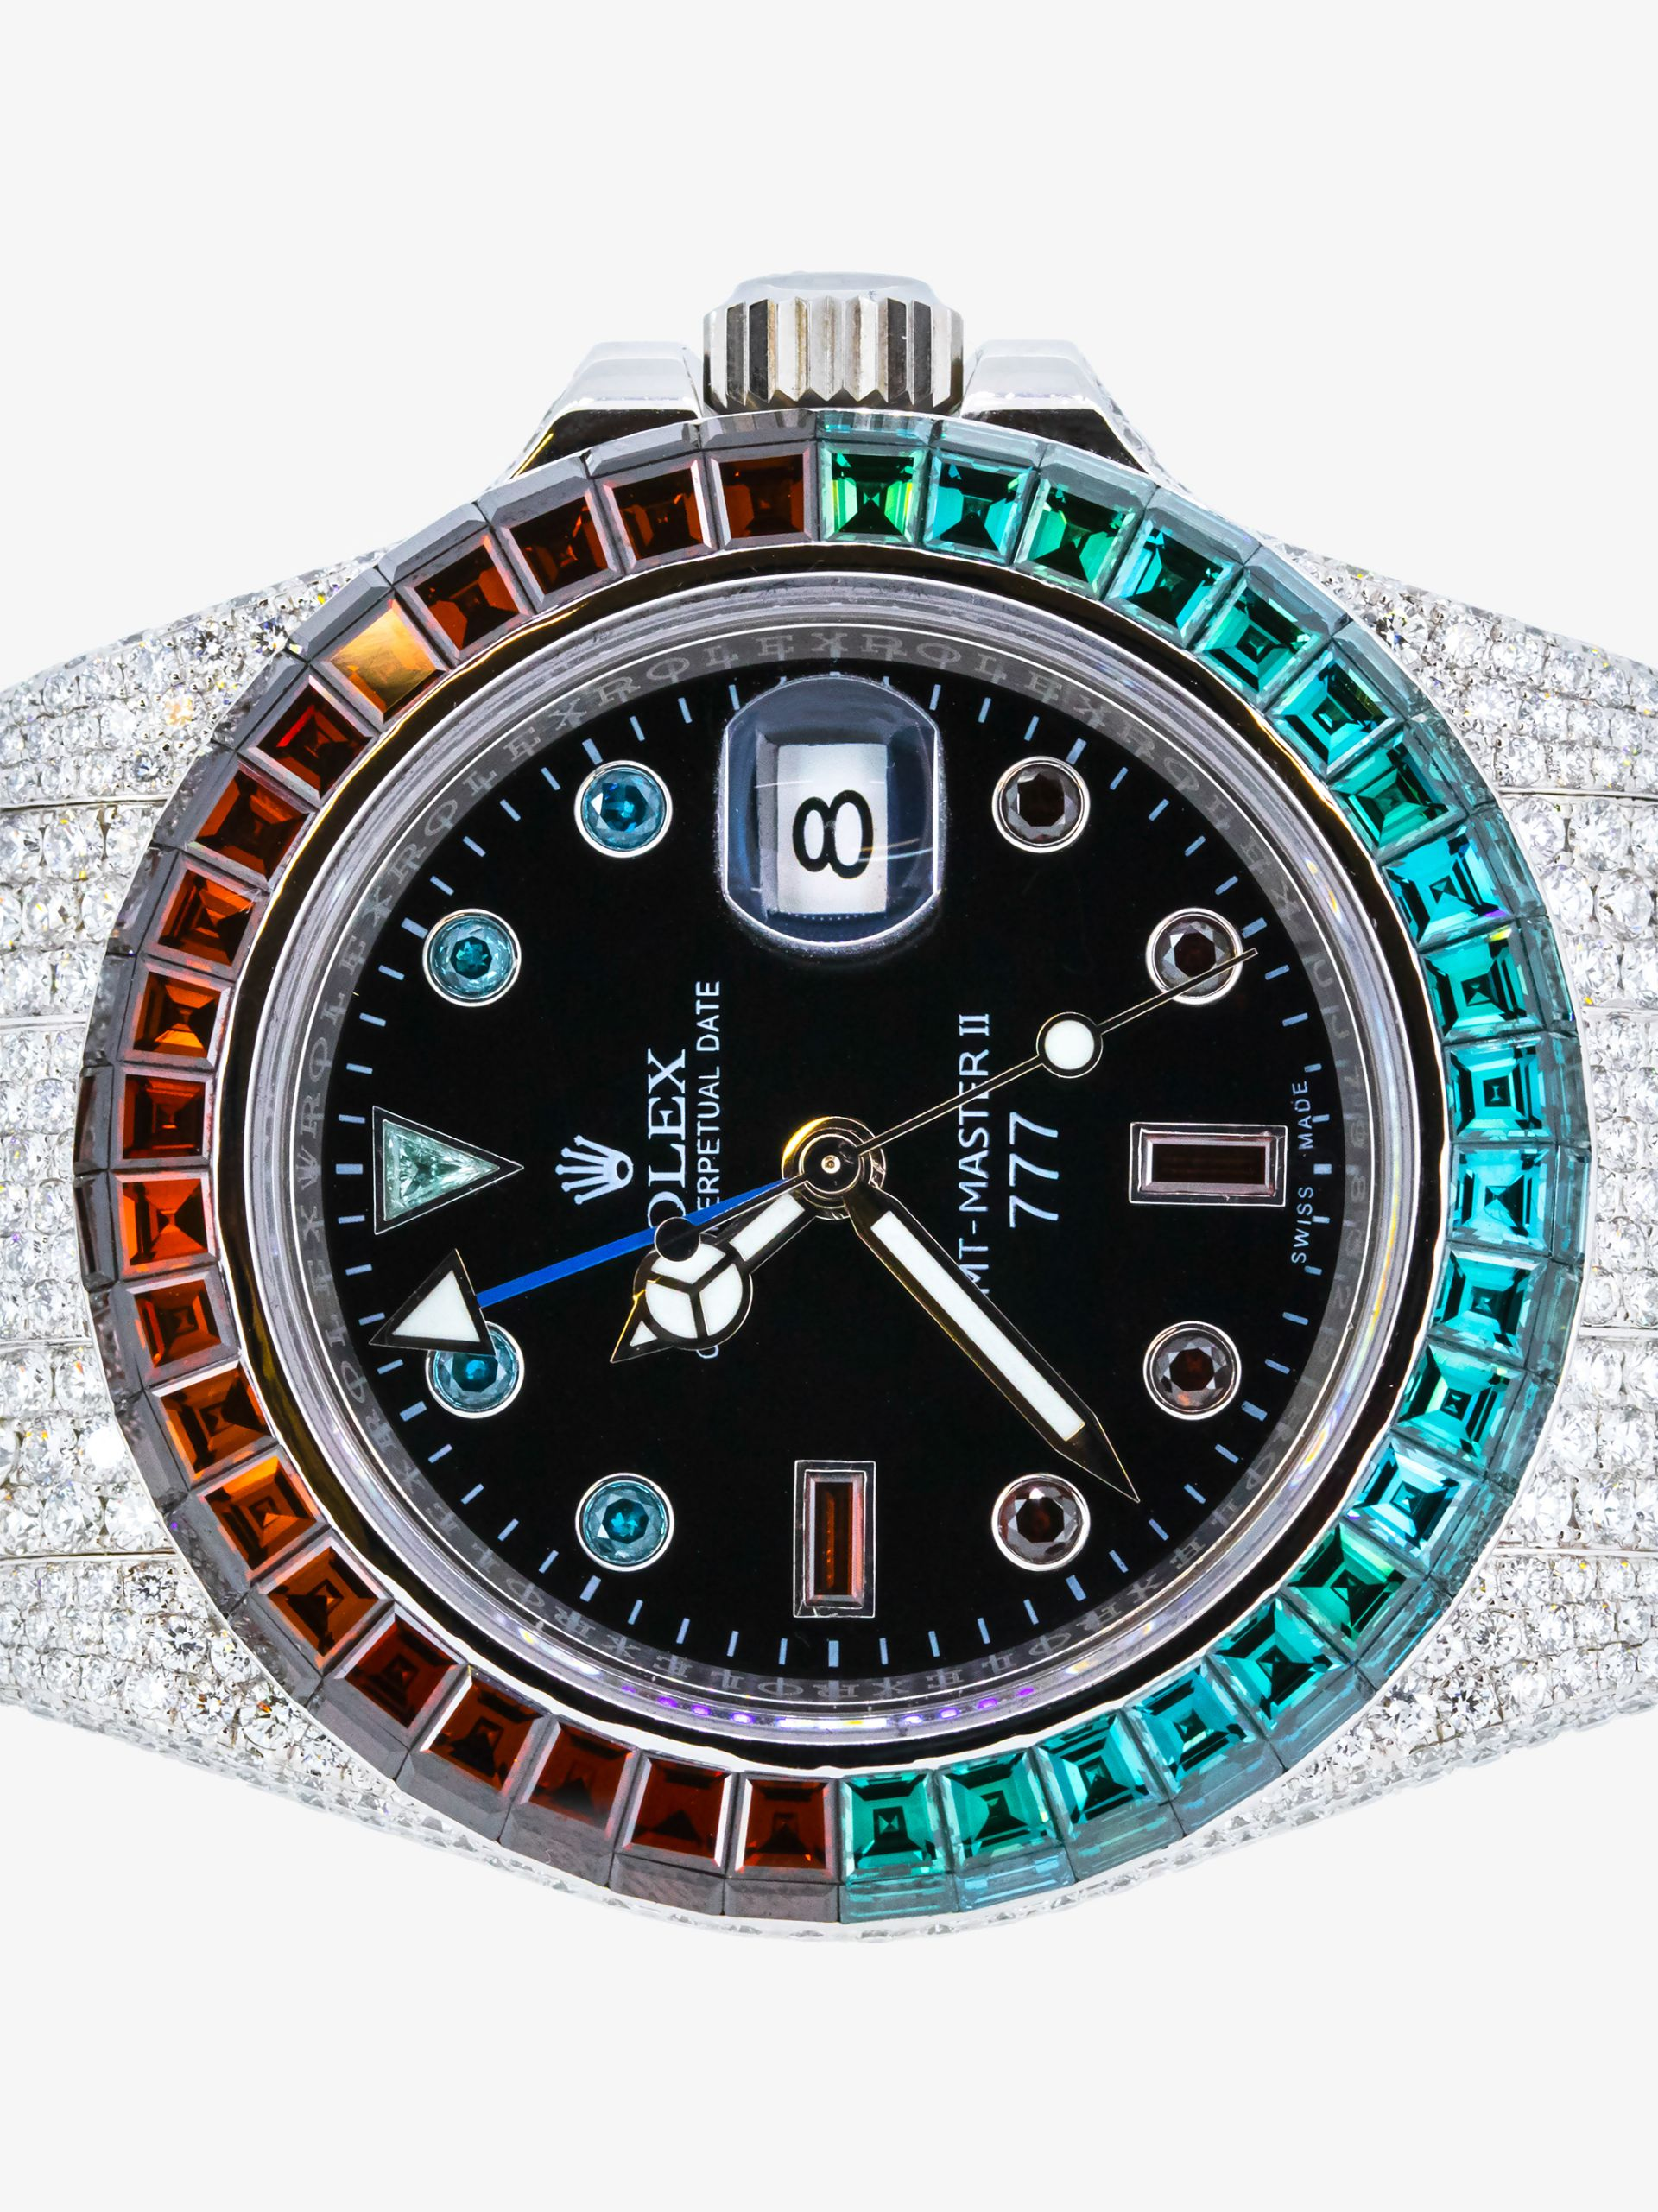 Rolex GMT Master II Iced Cold Pepsi